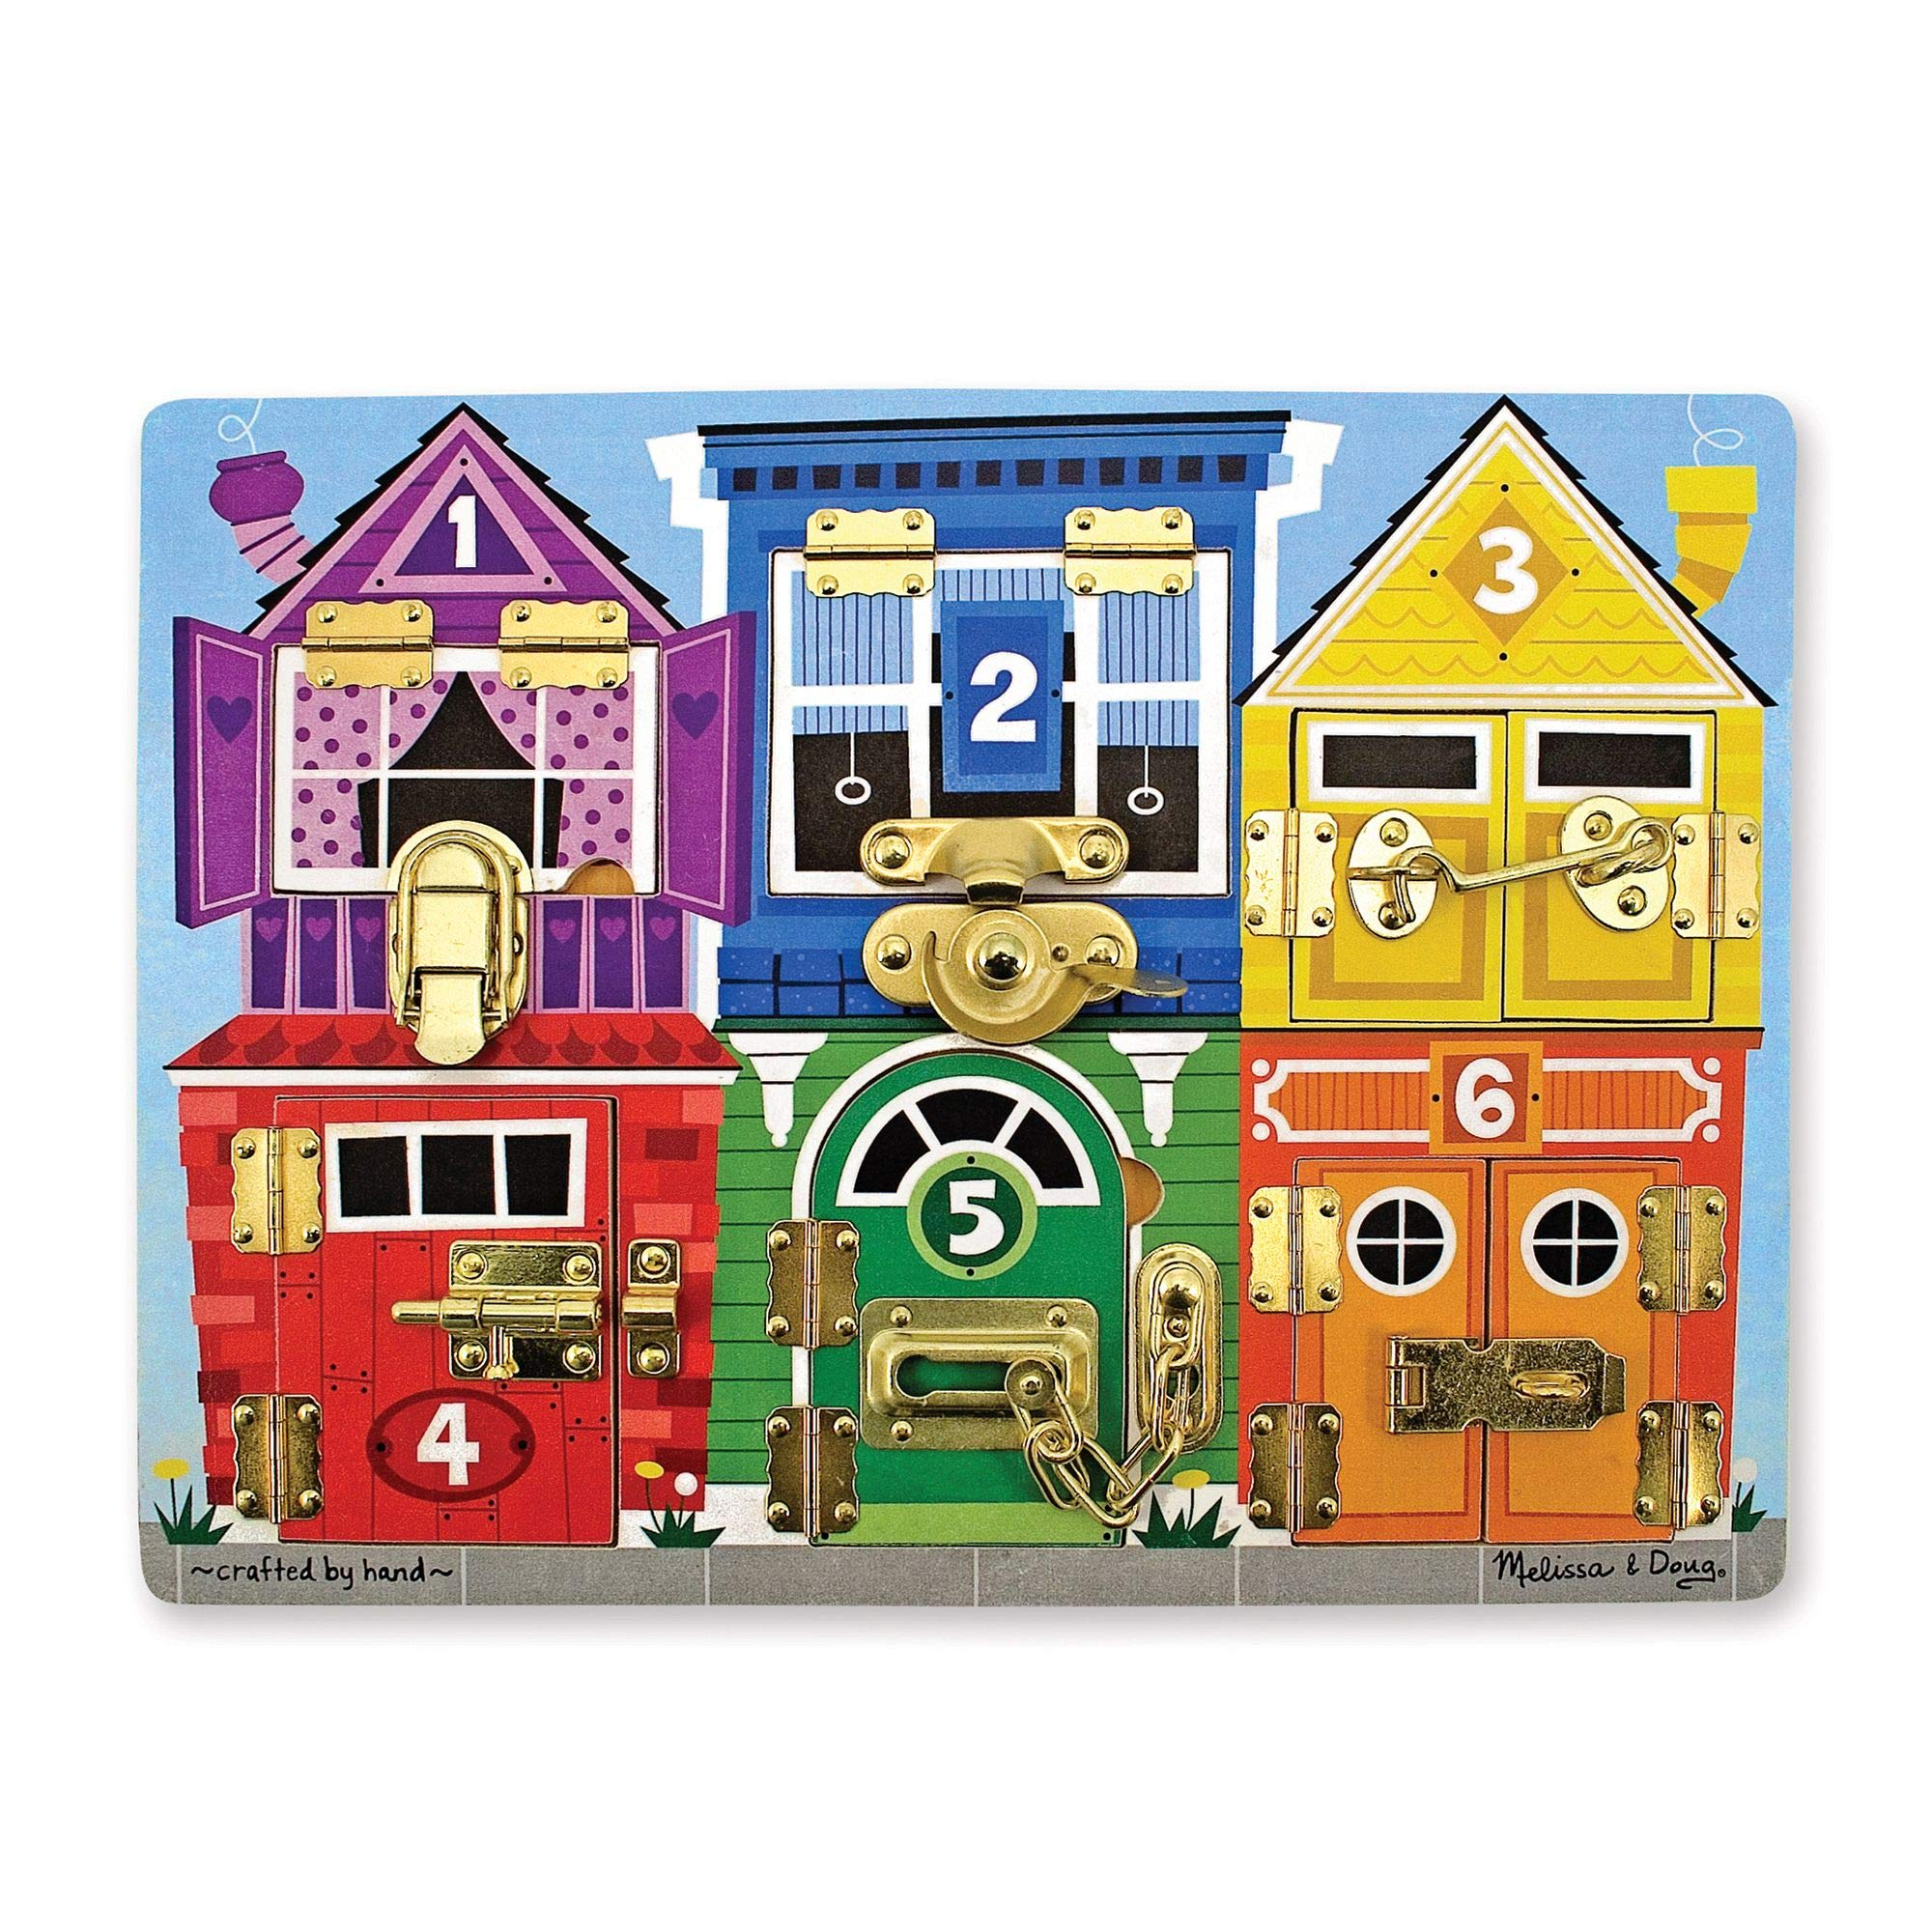 Melissa & Doug Wooden Latches Board, Developmental Toy, Helps Develop Fine Motor Skills, Smooth-Sanded Wood, 15.5'' H x 11.5'' W x 1.25'' L